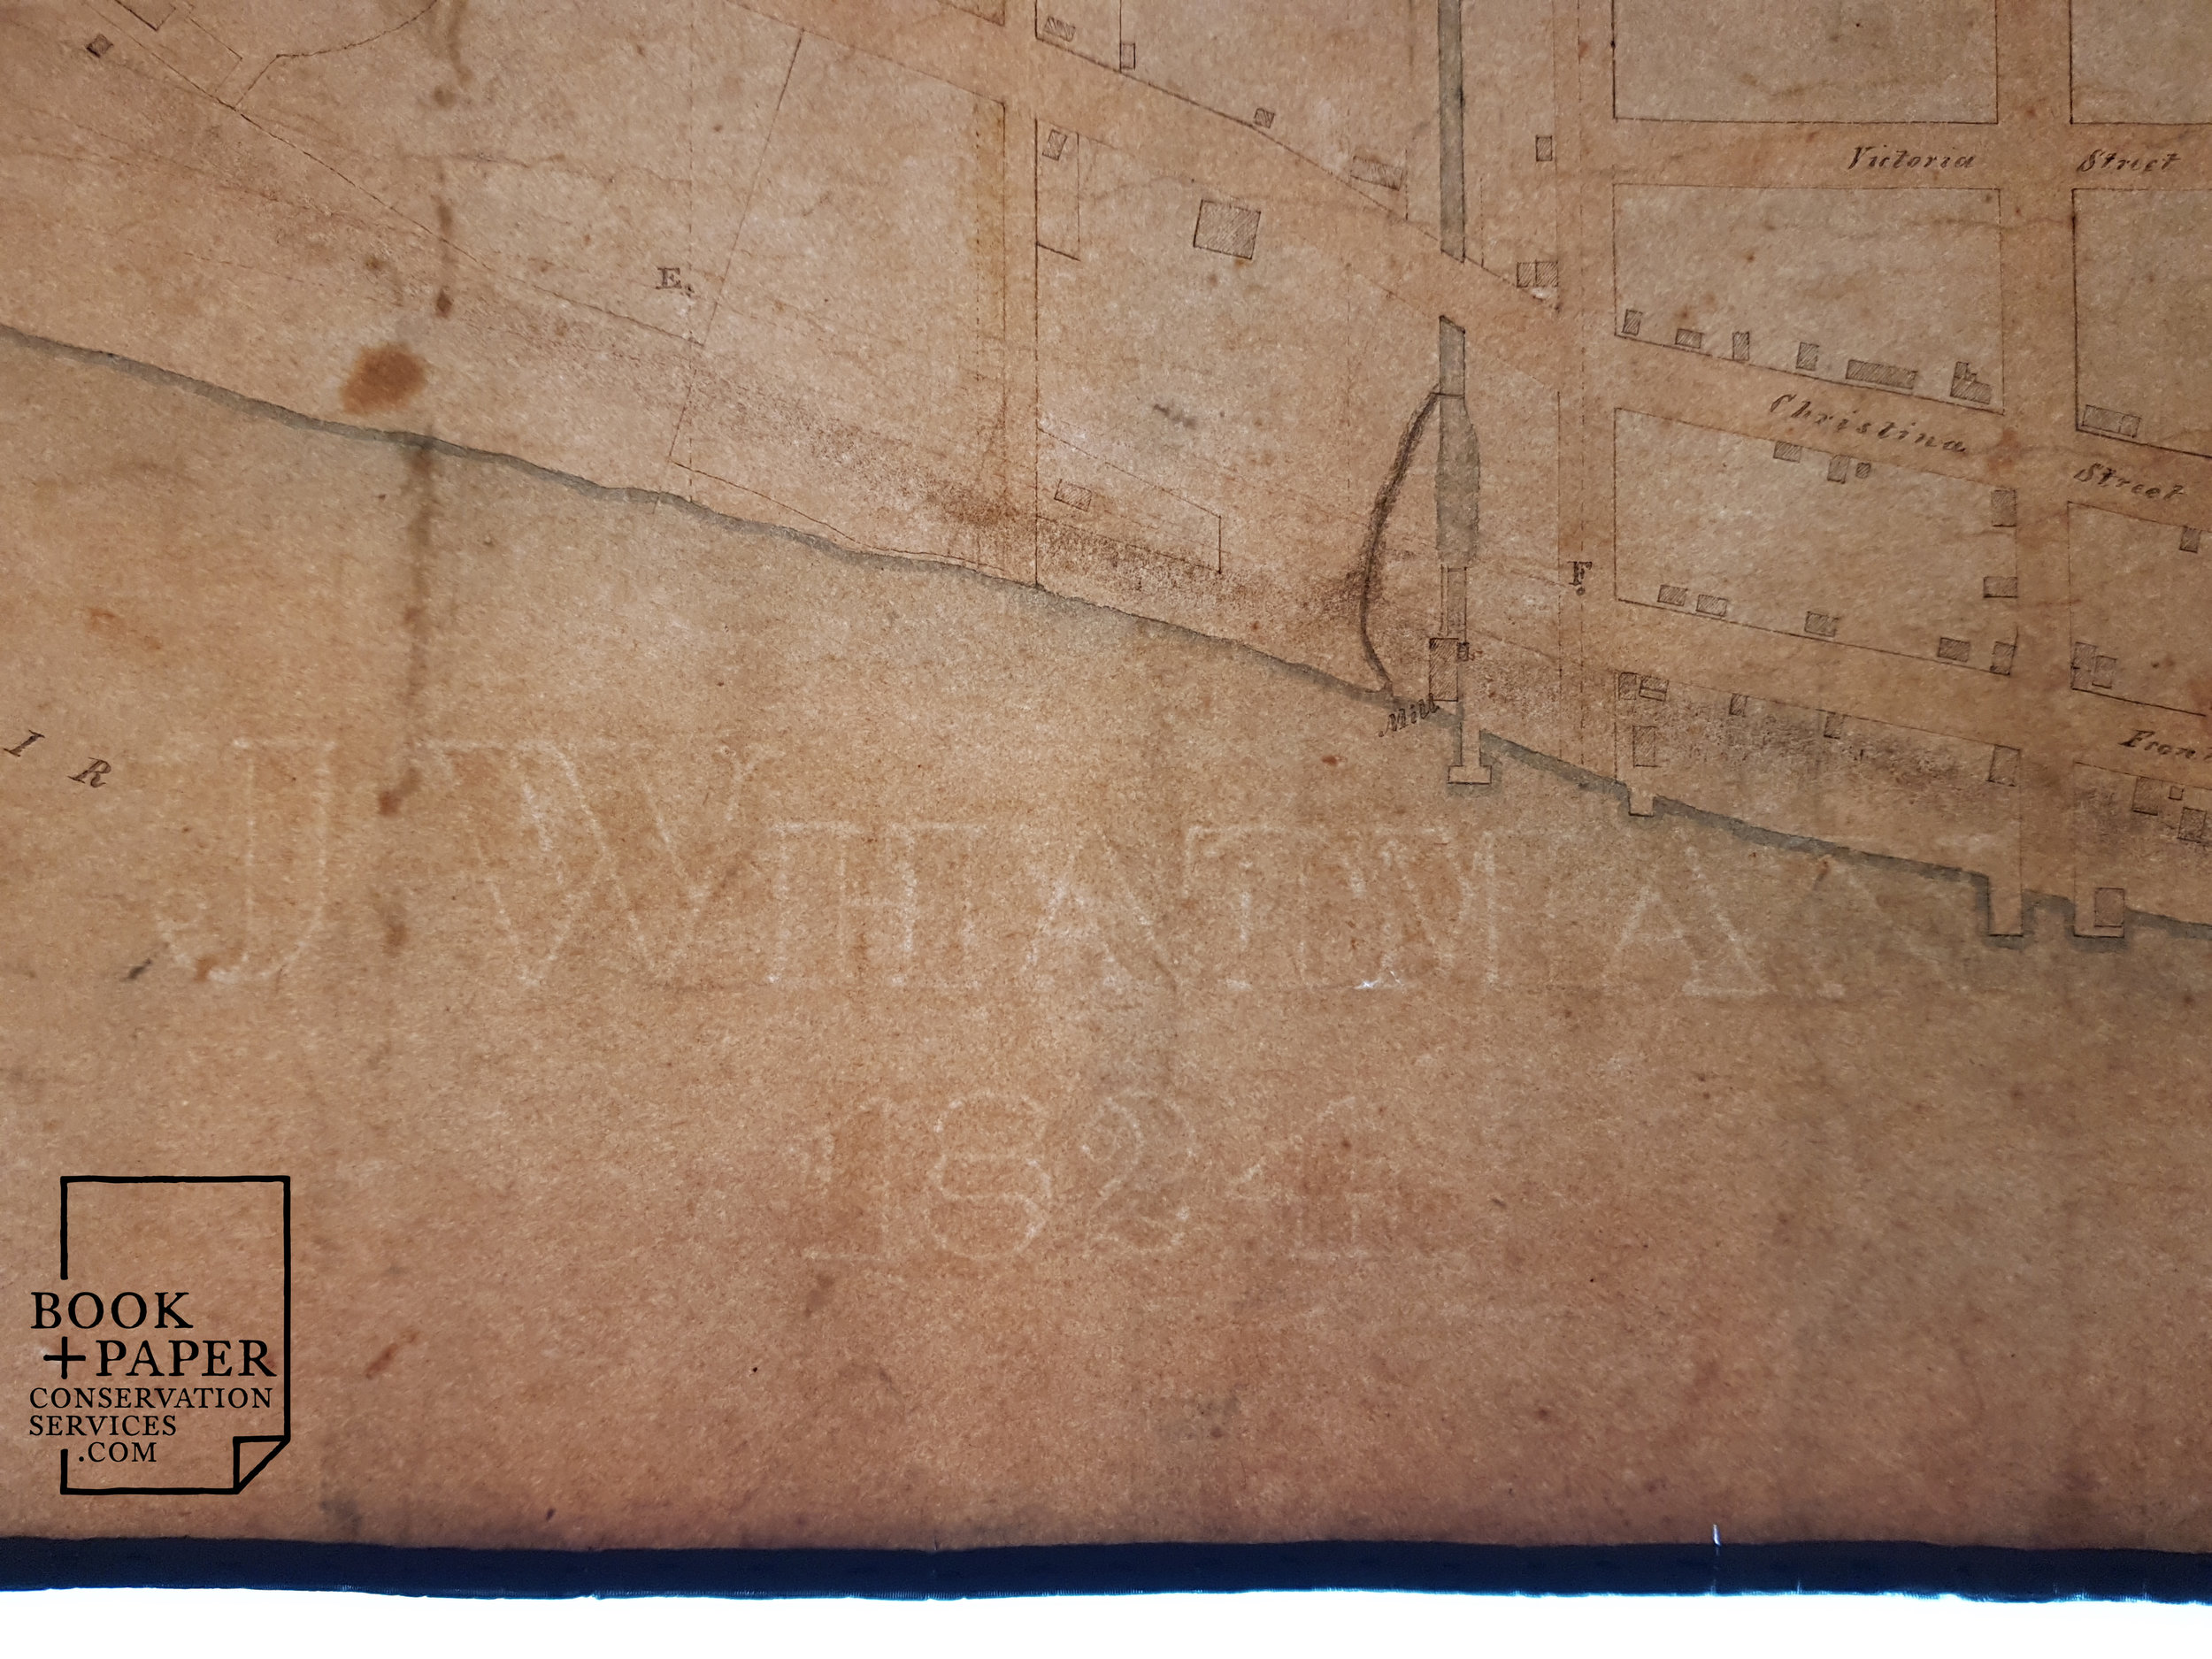 A watermark from the notable papermaker J Whatman is visible in transmitted light. The map is drawn on hand-made laid rag paper.